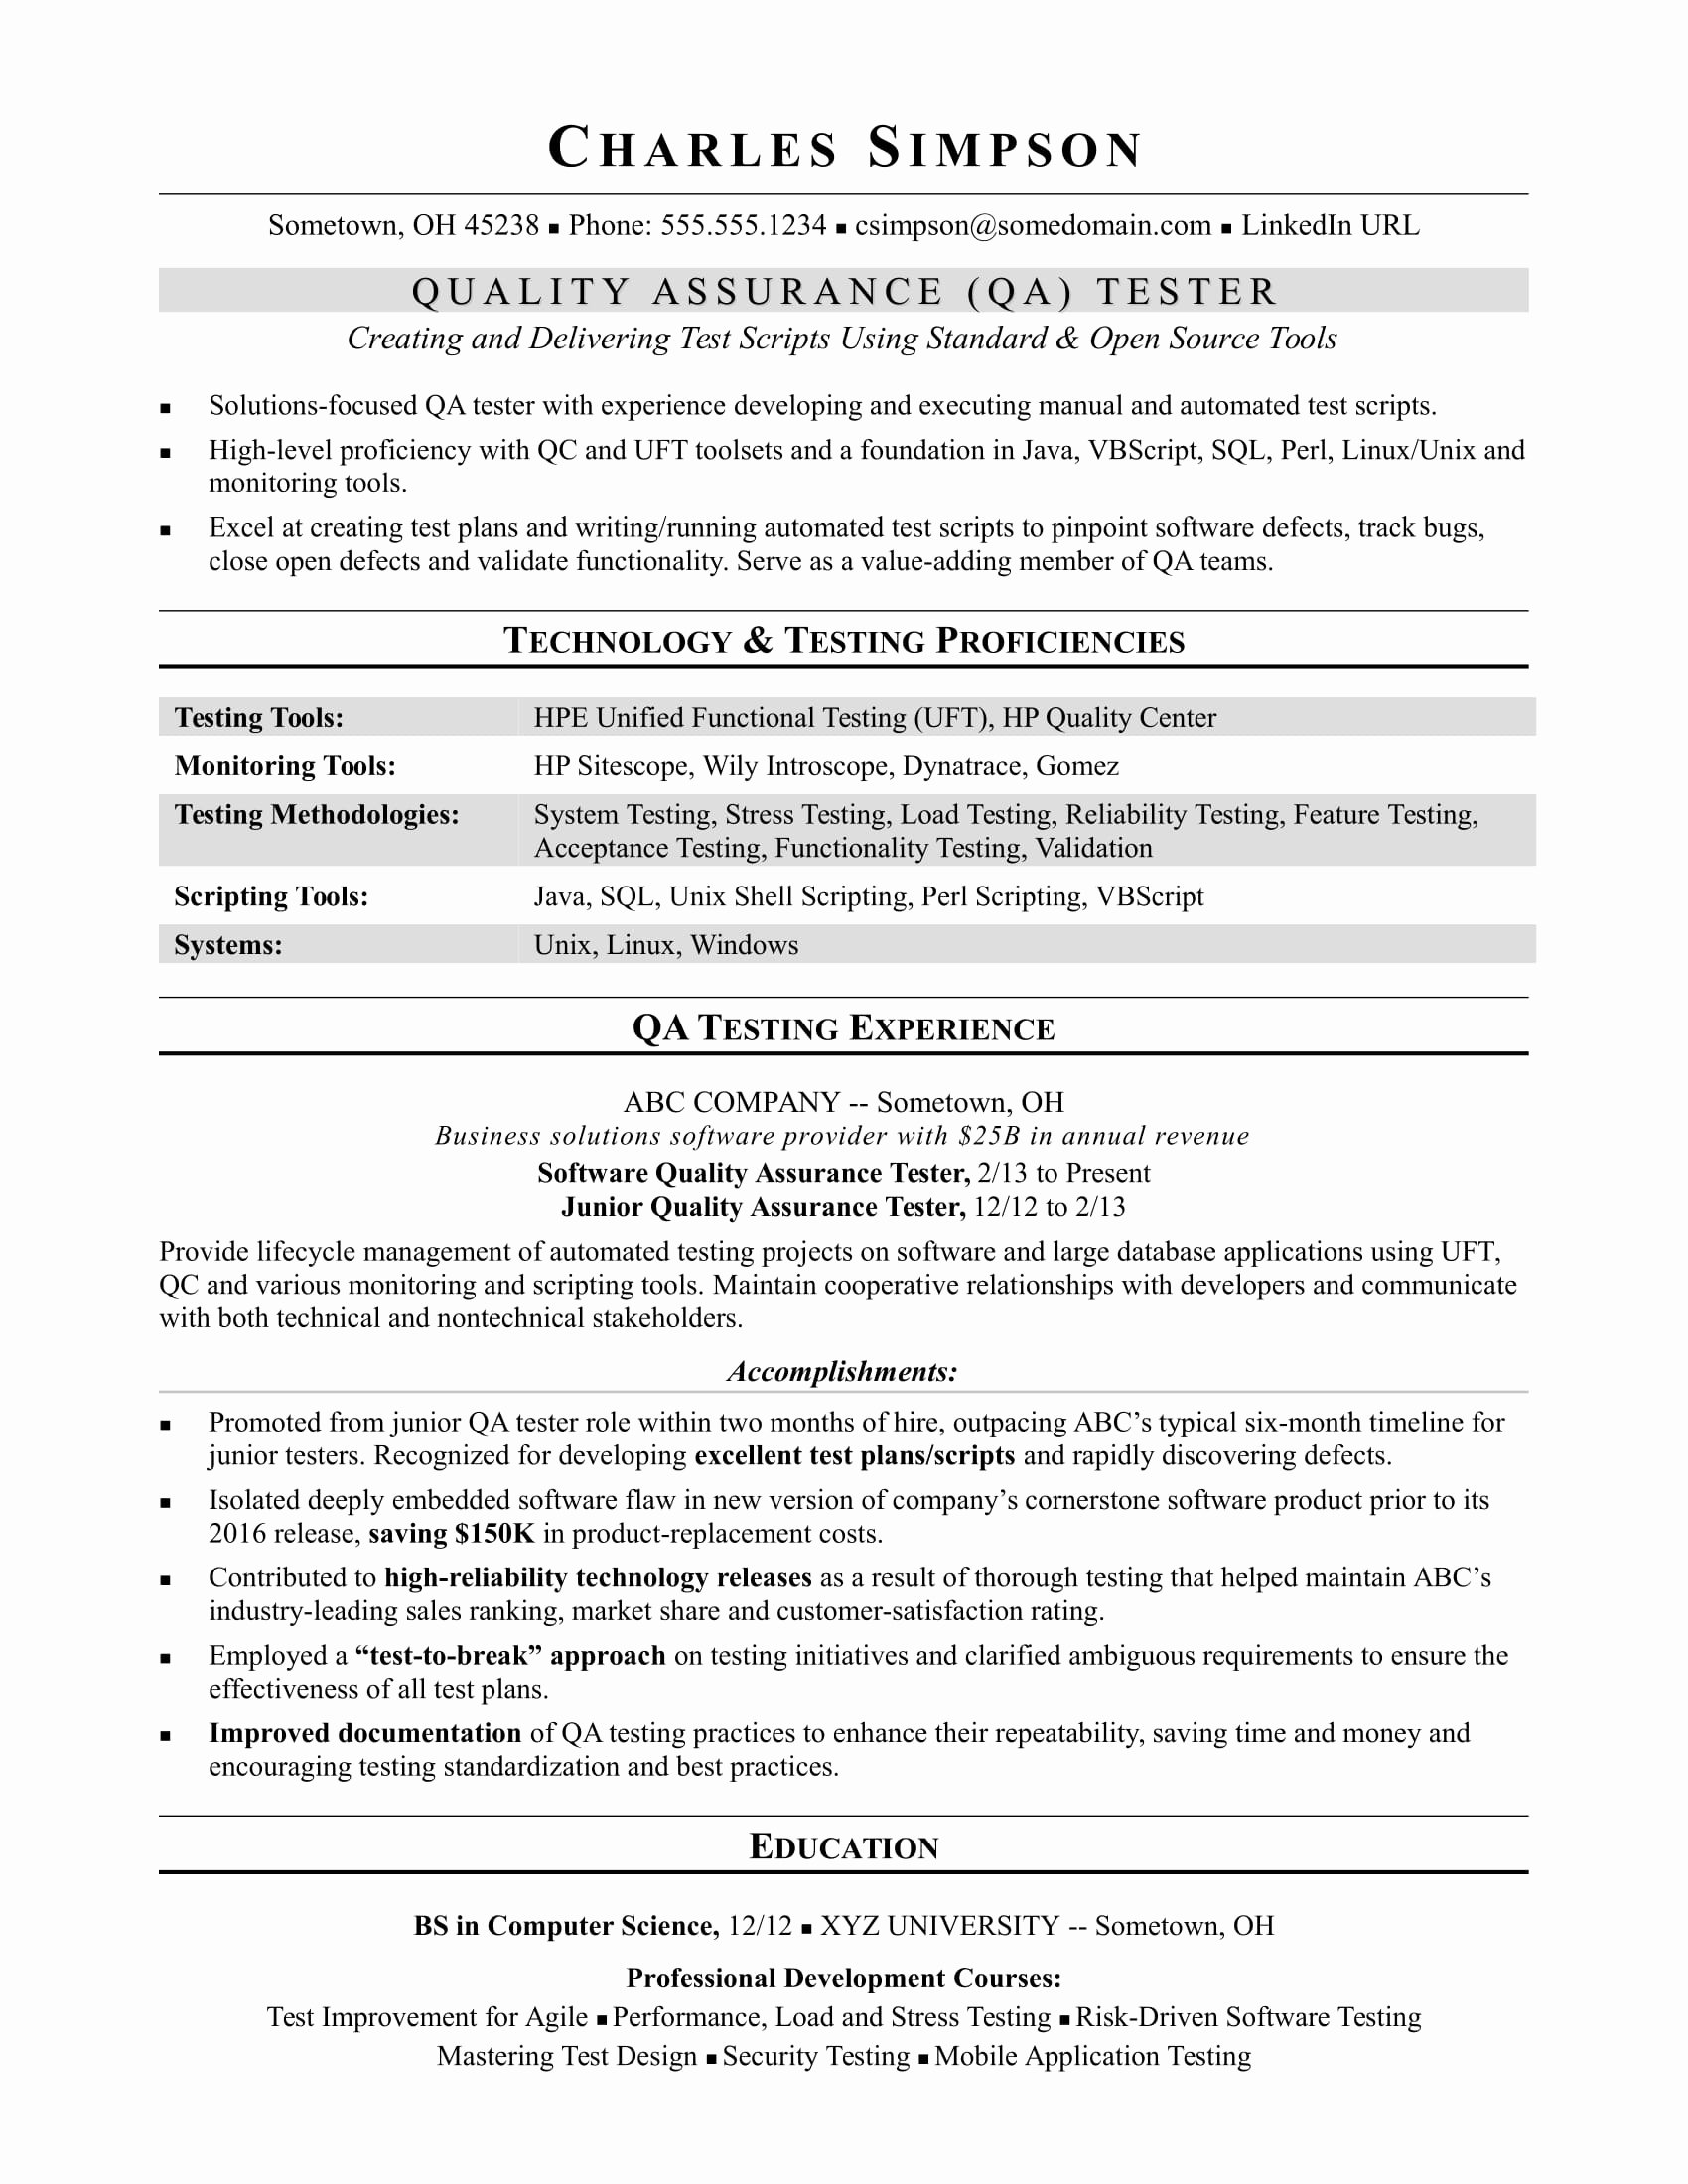 Sample Resume for A Midlevel Qa software Tester